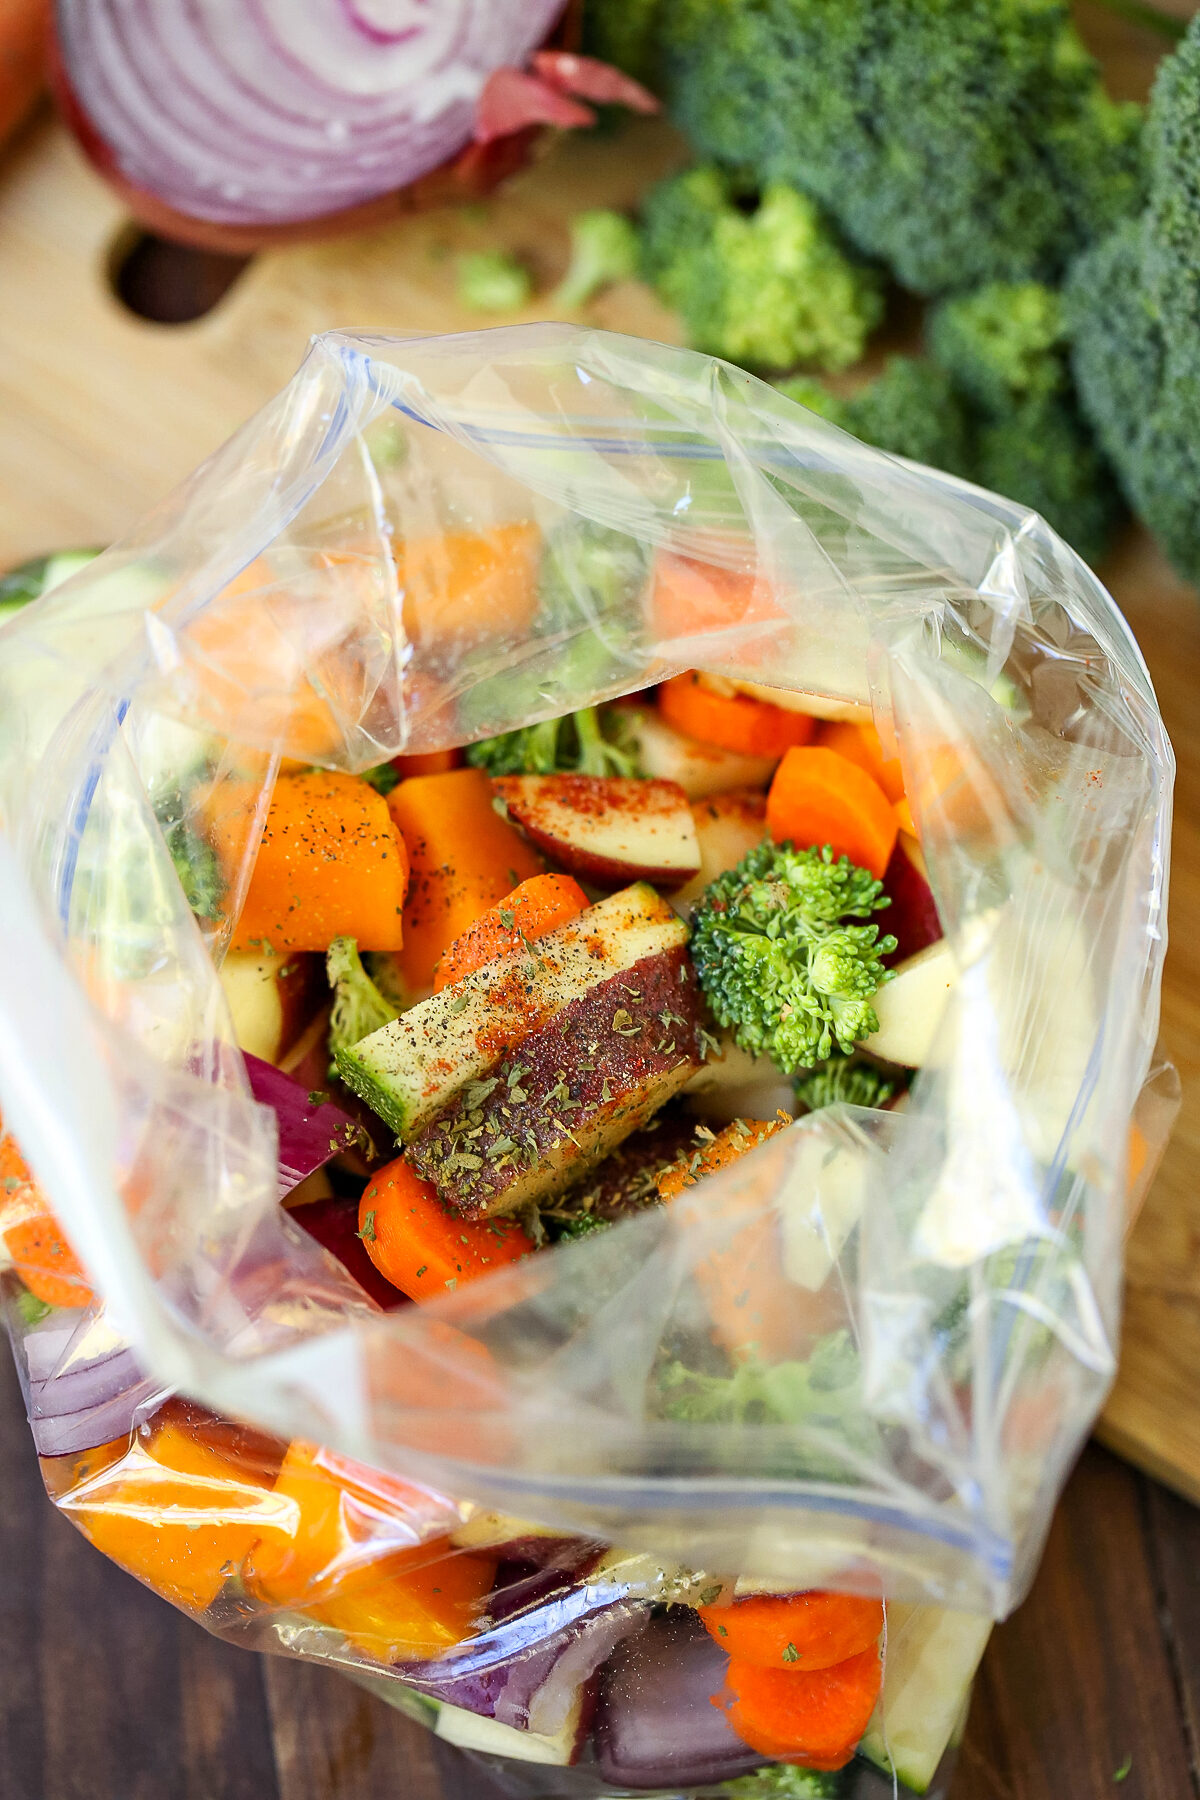 Oven-Roasted Vegetables are a great side dish for any meal, and this recipe is an easy and delicious way to prepare them.